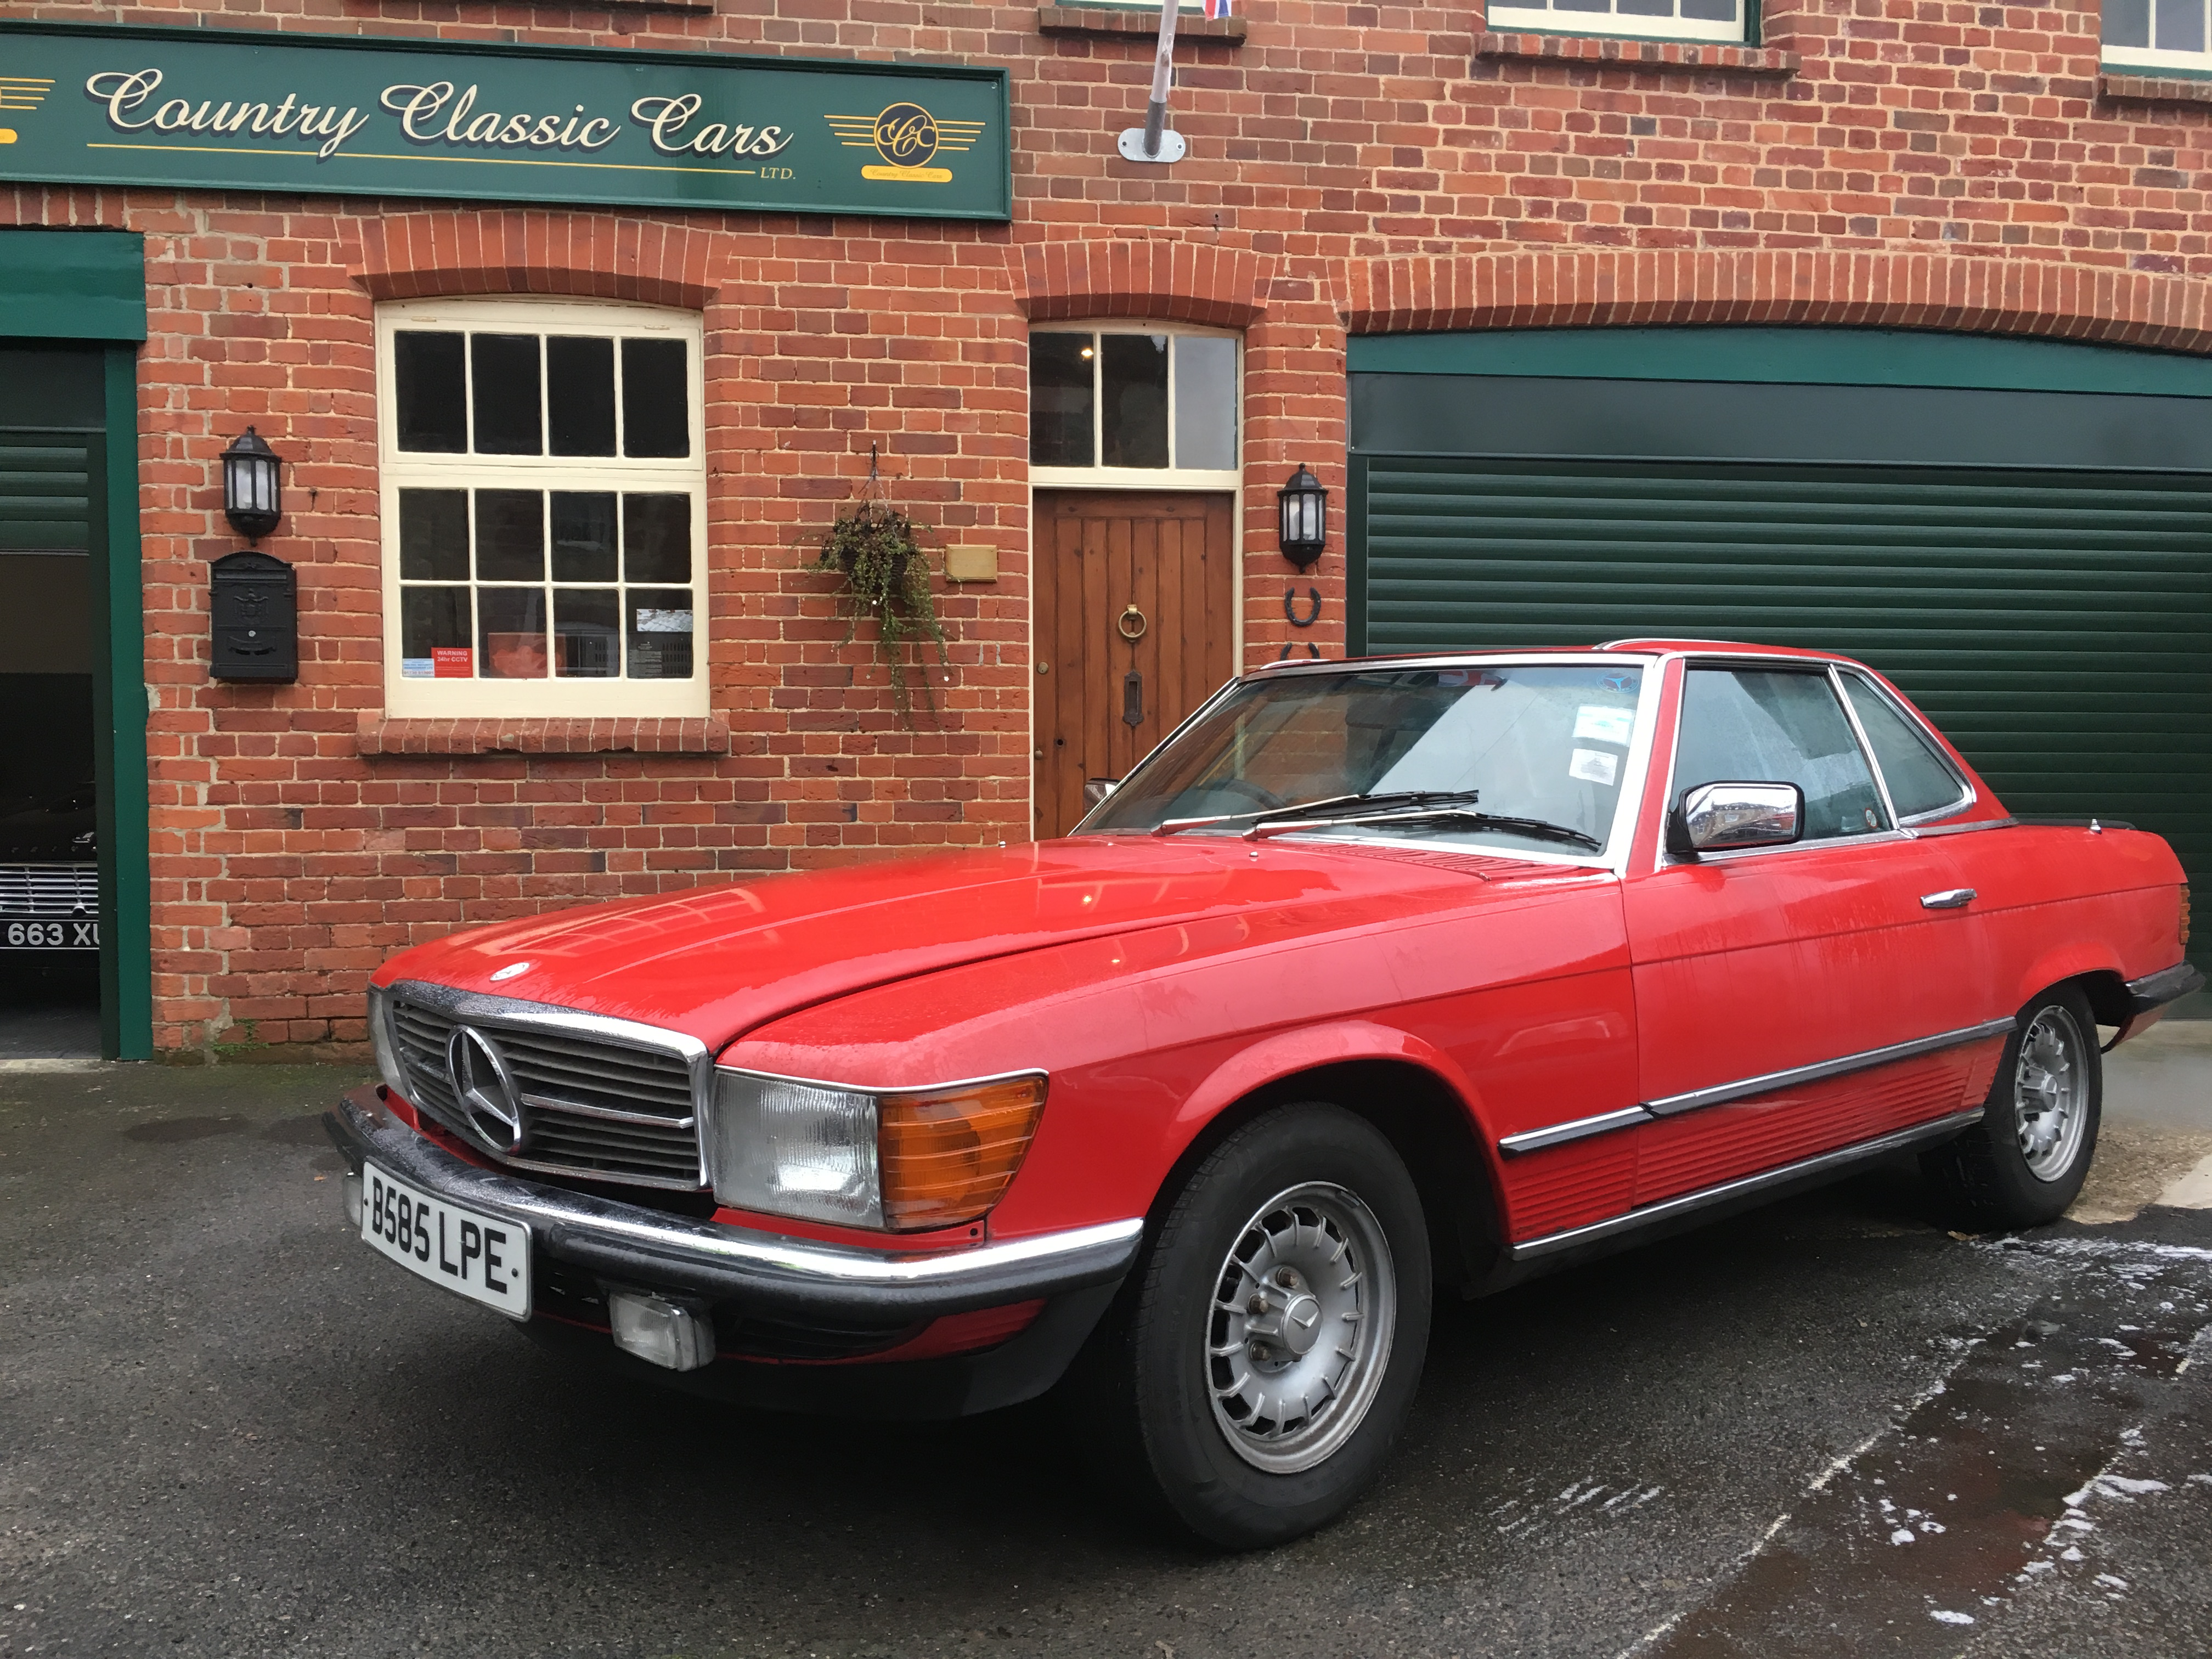 1984 mercedes benz r107 280sl country classic cars for What country is mercedes benz from